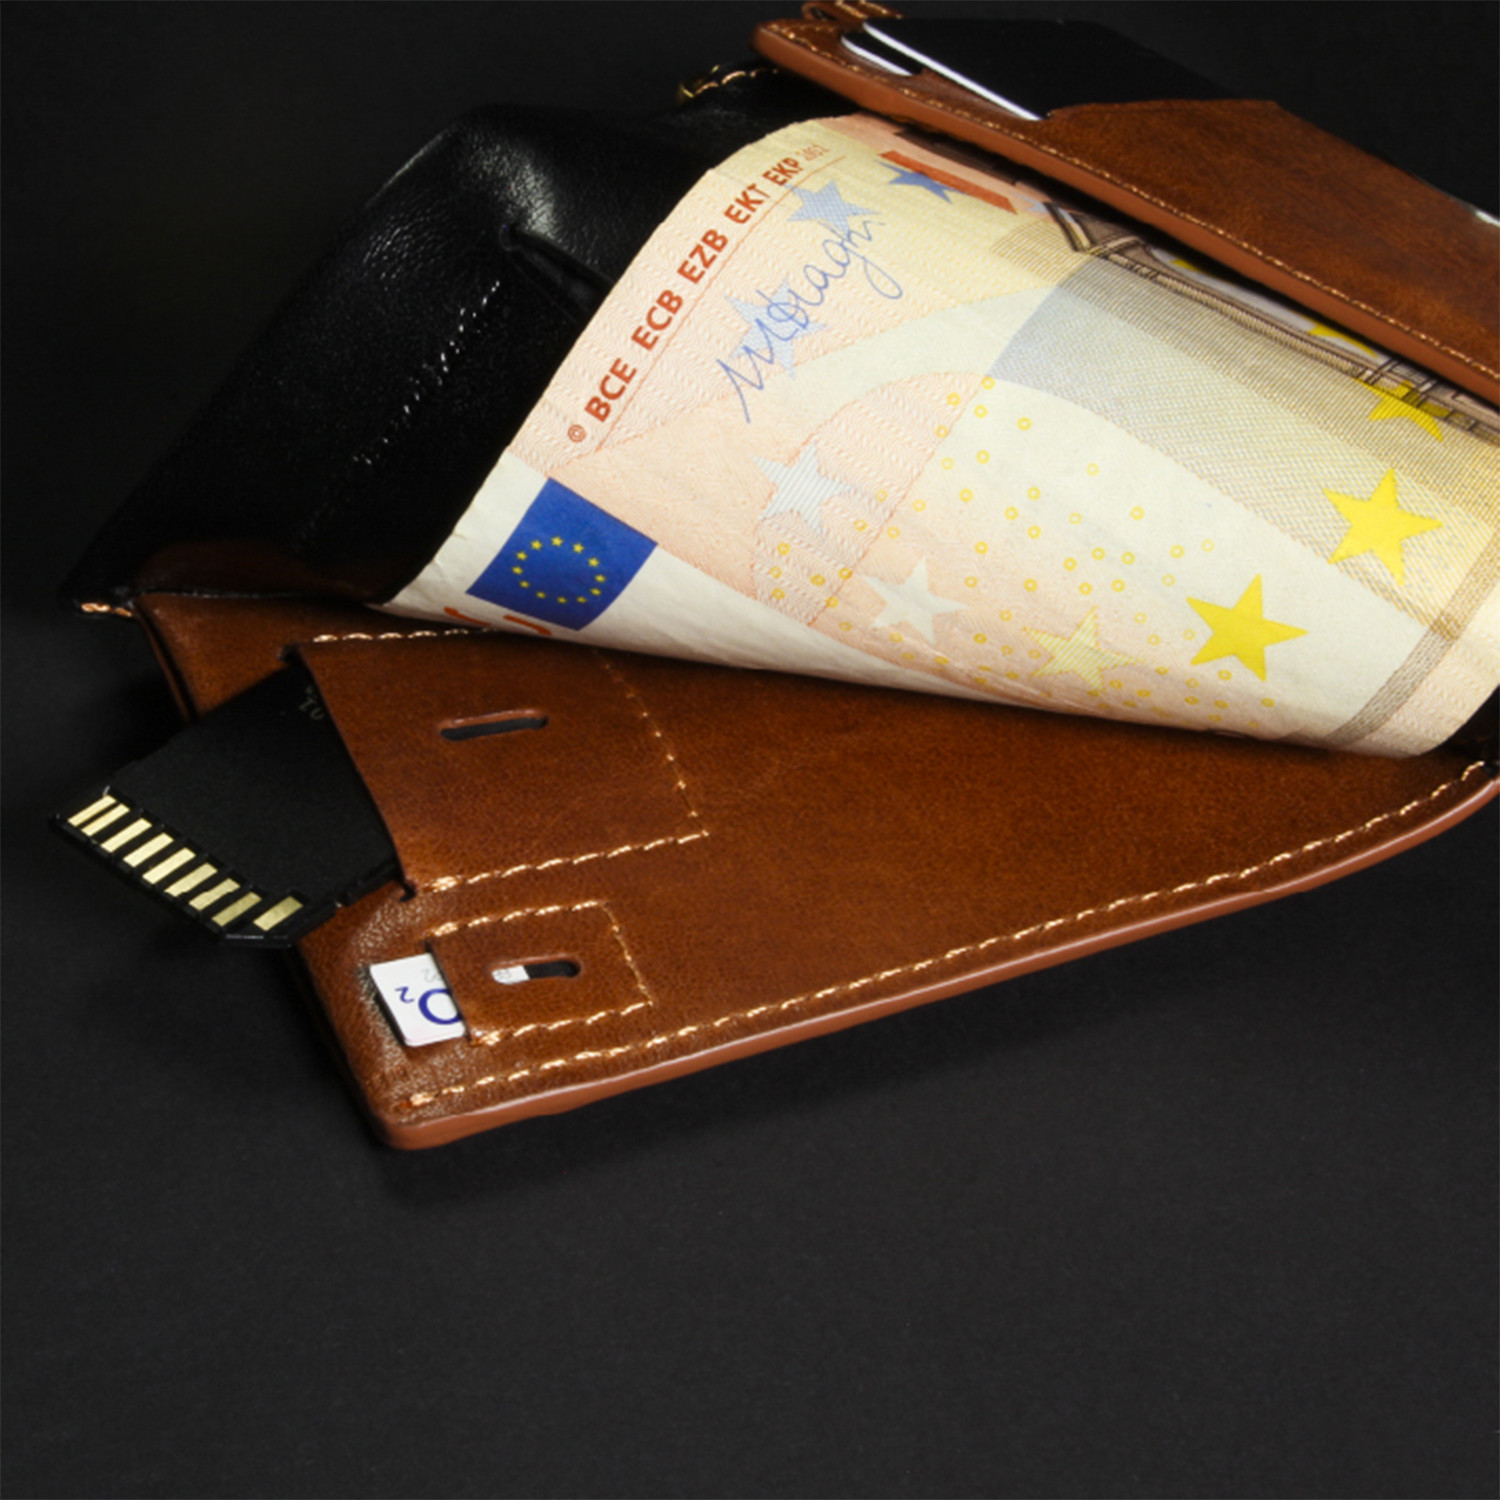 wallet  chipolo card tracker  black  suave wallet